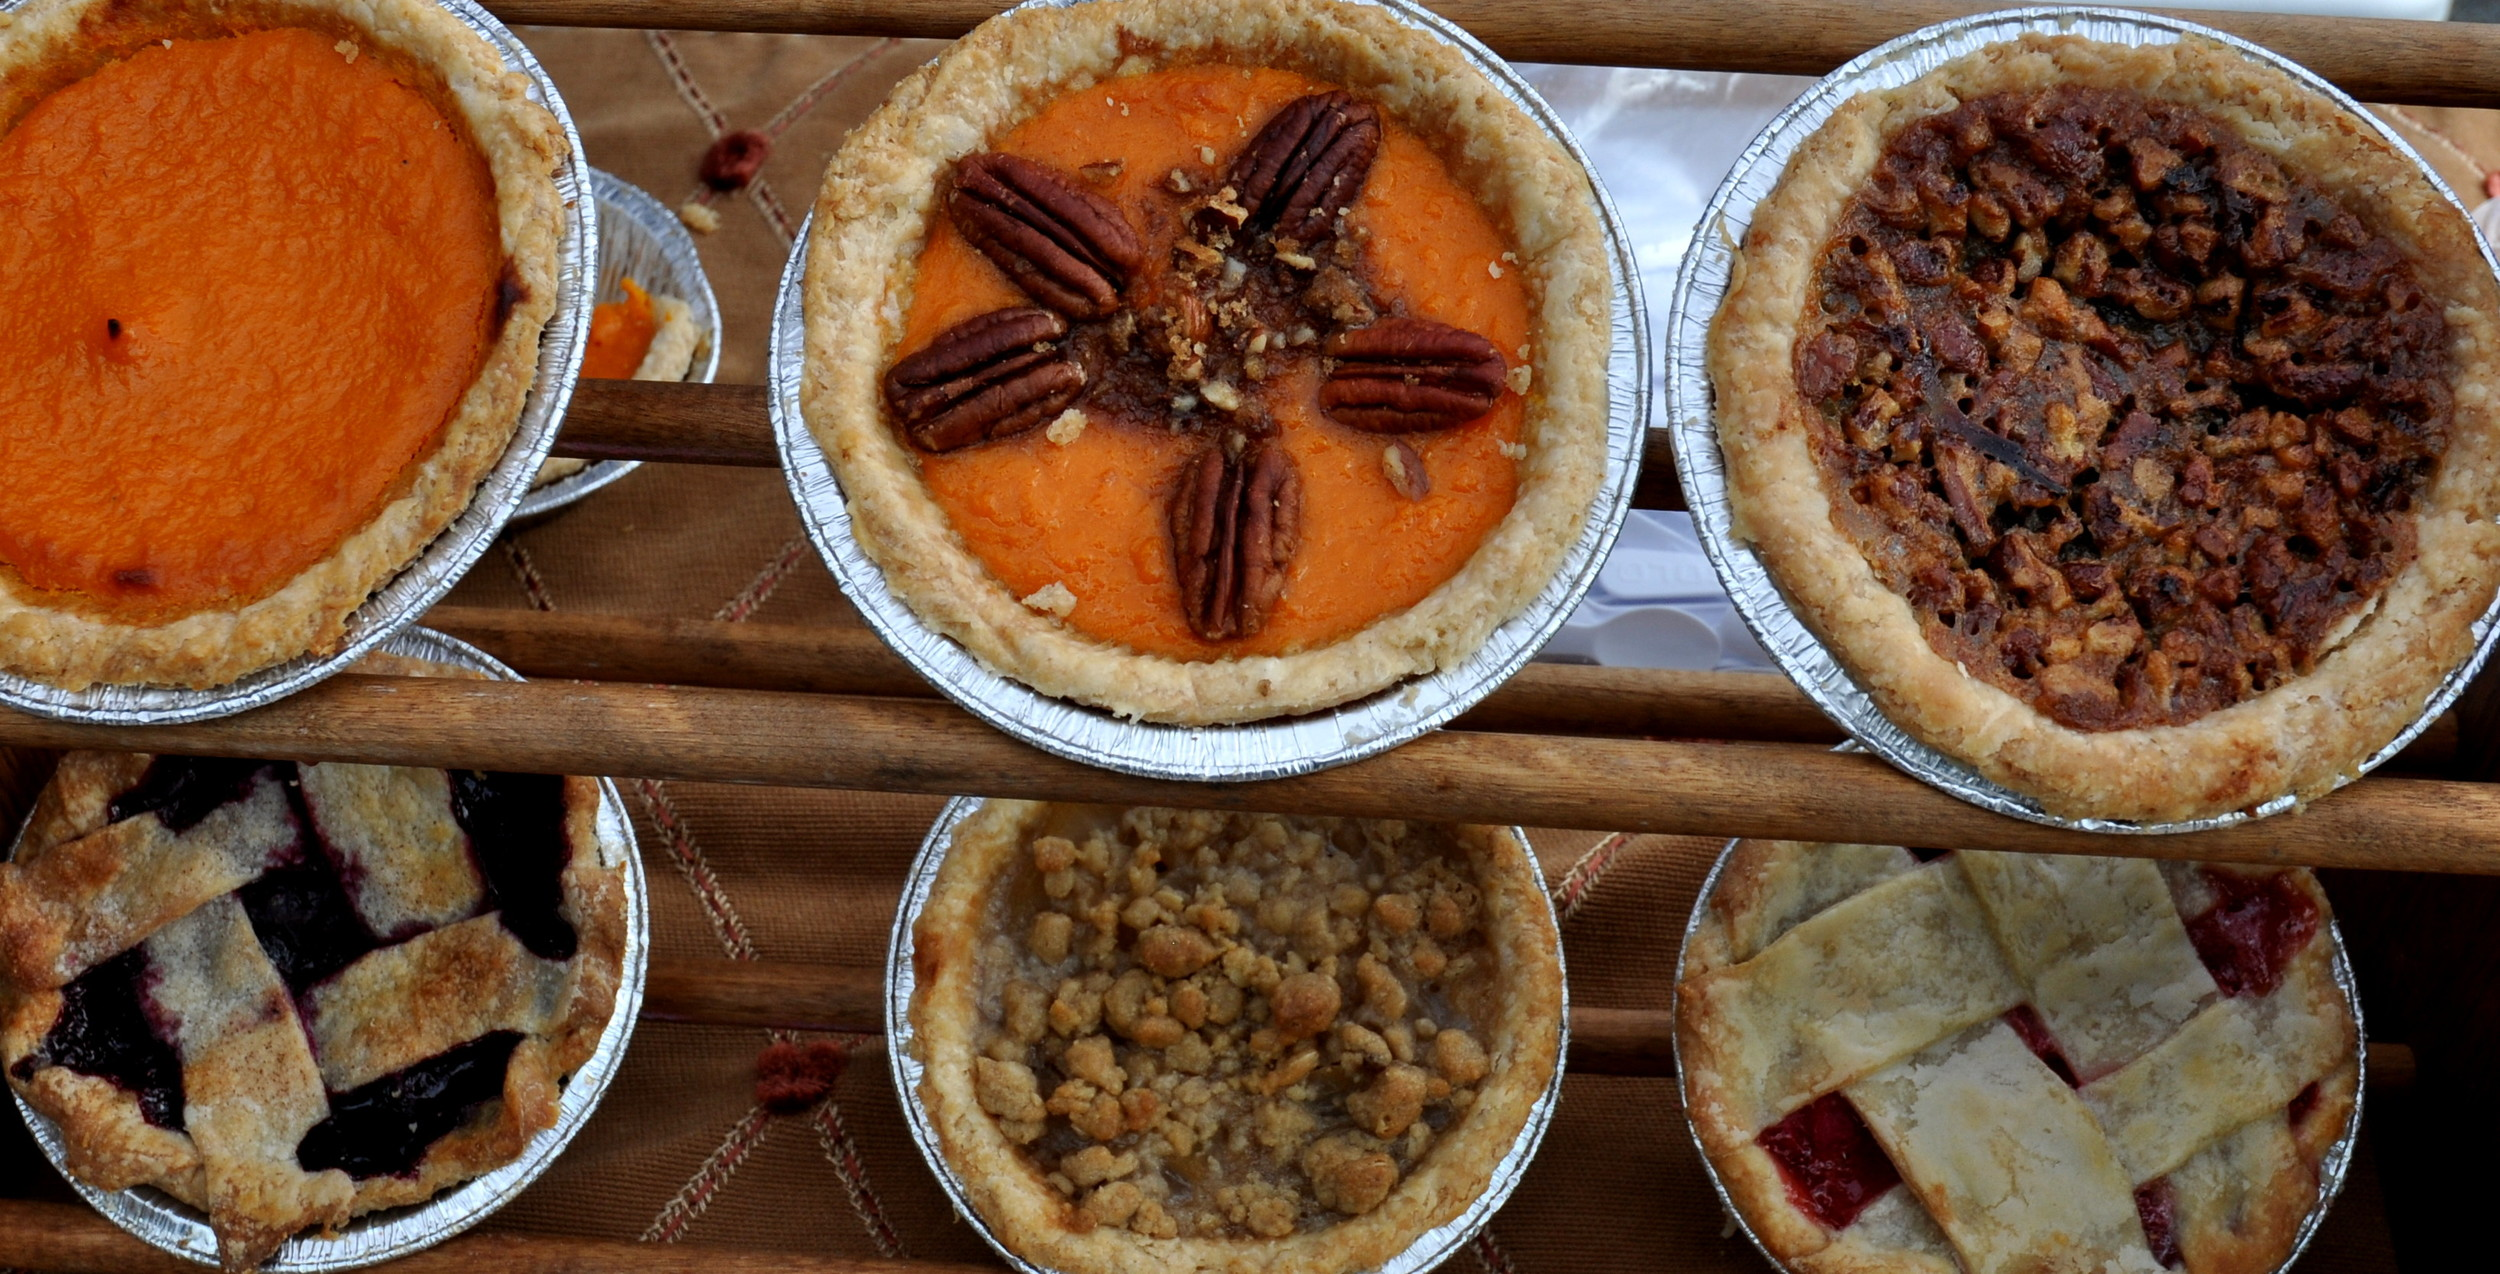 Pies from Simply Soulful.. Photo copyright 2014 by Zachary D. Lyons.